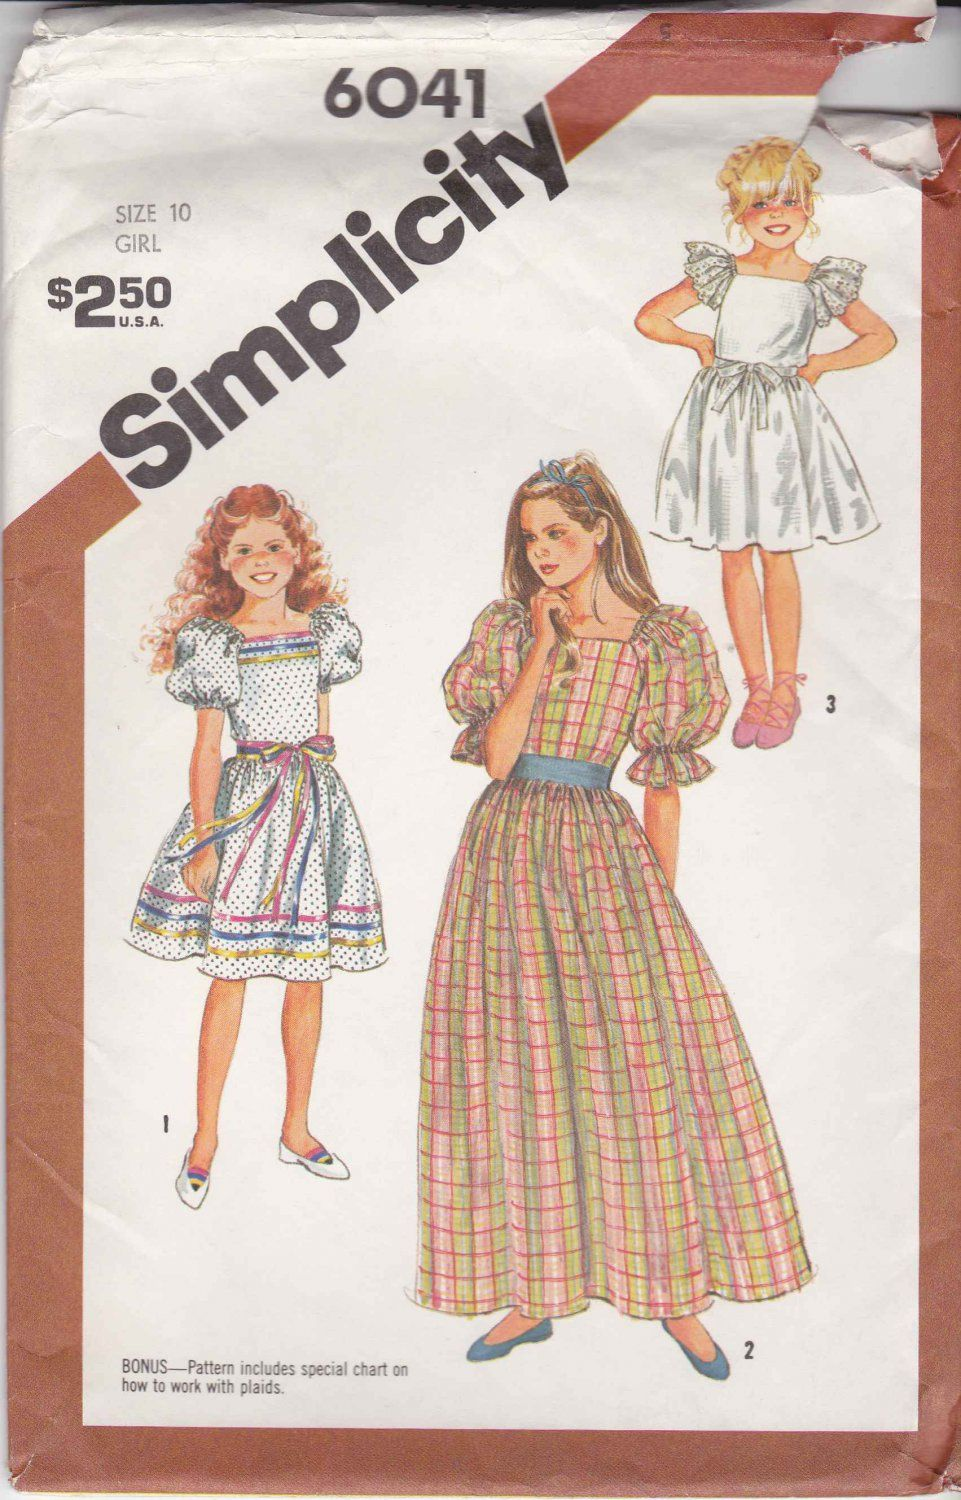 Simplicity sewing pattern 6041 girls size 10 pullover dress full simplicity sewing pattern 6041 girls size 10 pullover dress full skirt sleeve length options simplicity jeuxipadfo Gallery